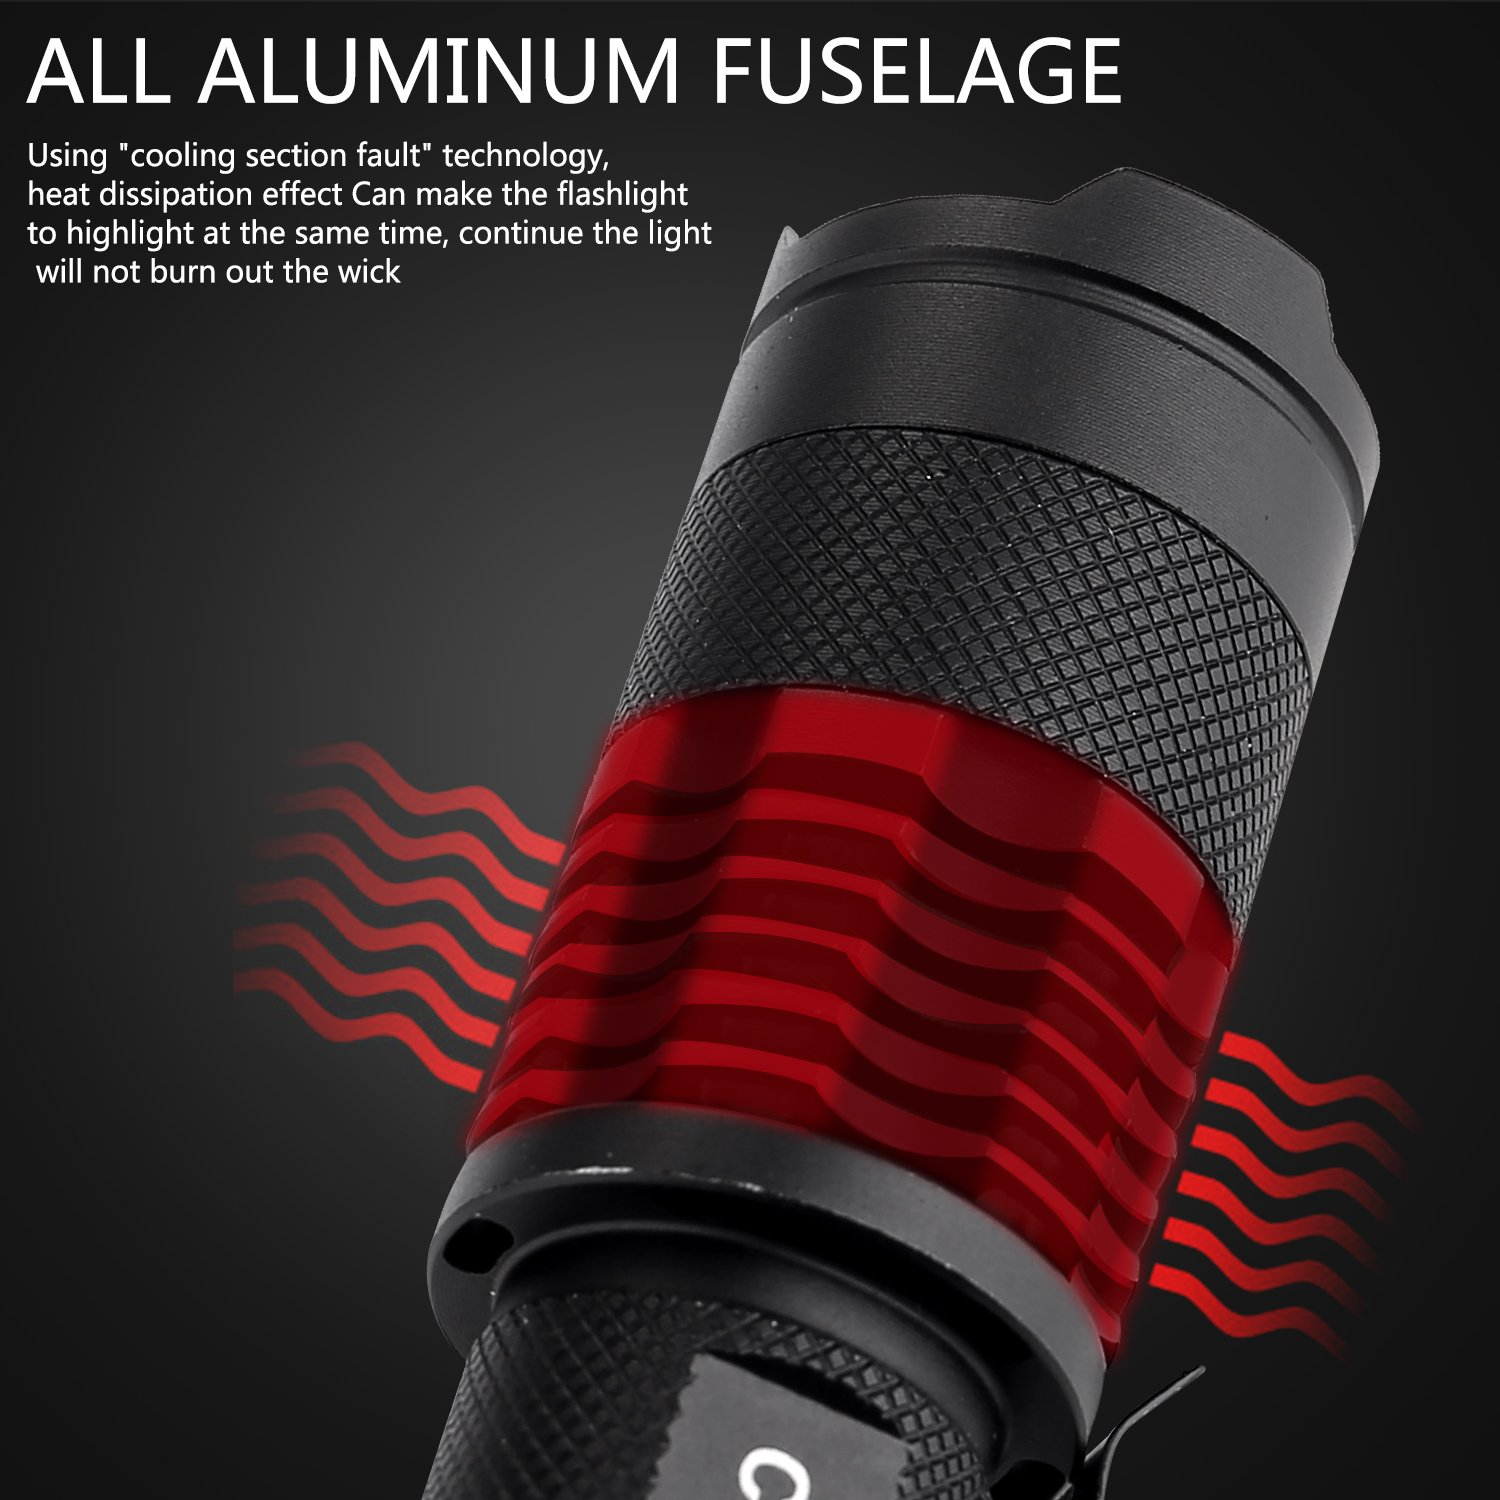 GSPON LED Flashlight,Outlite High Power 3 Mode Tactical Flashlight Handheld Waterproof Flashlight for Outdoor by GSPON (Image #5)